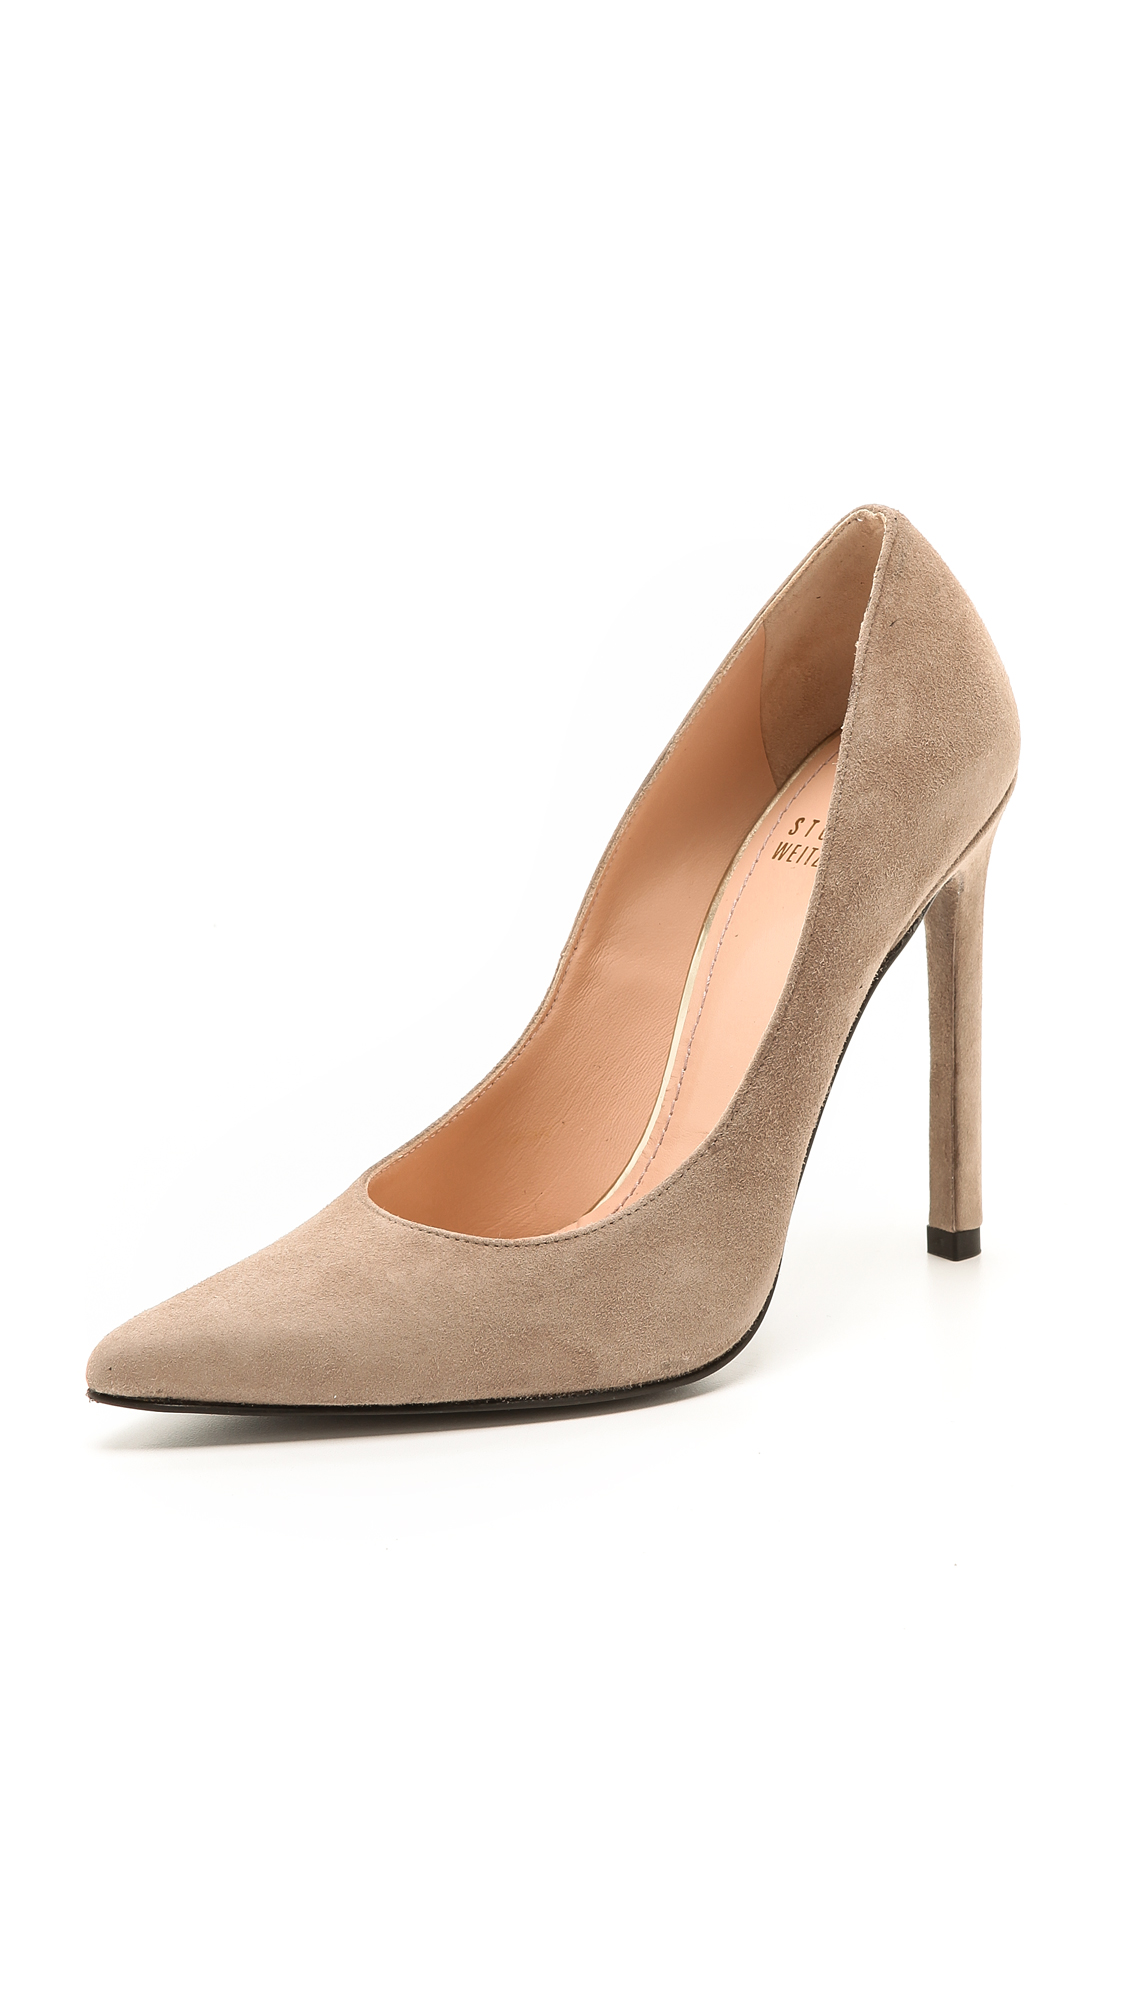 Stuart Weitzman Queen 110mm Suede Pumps - Haze